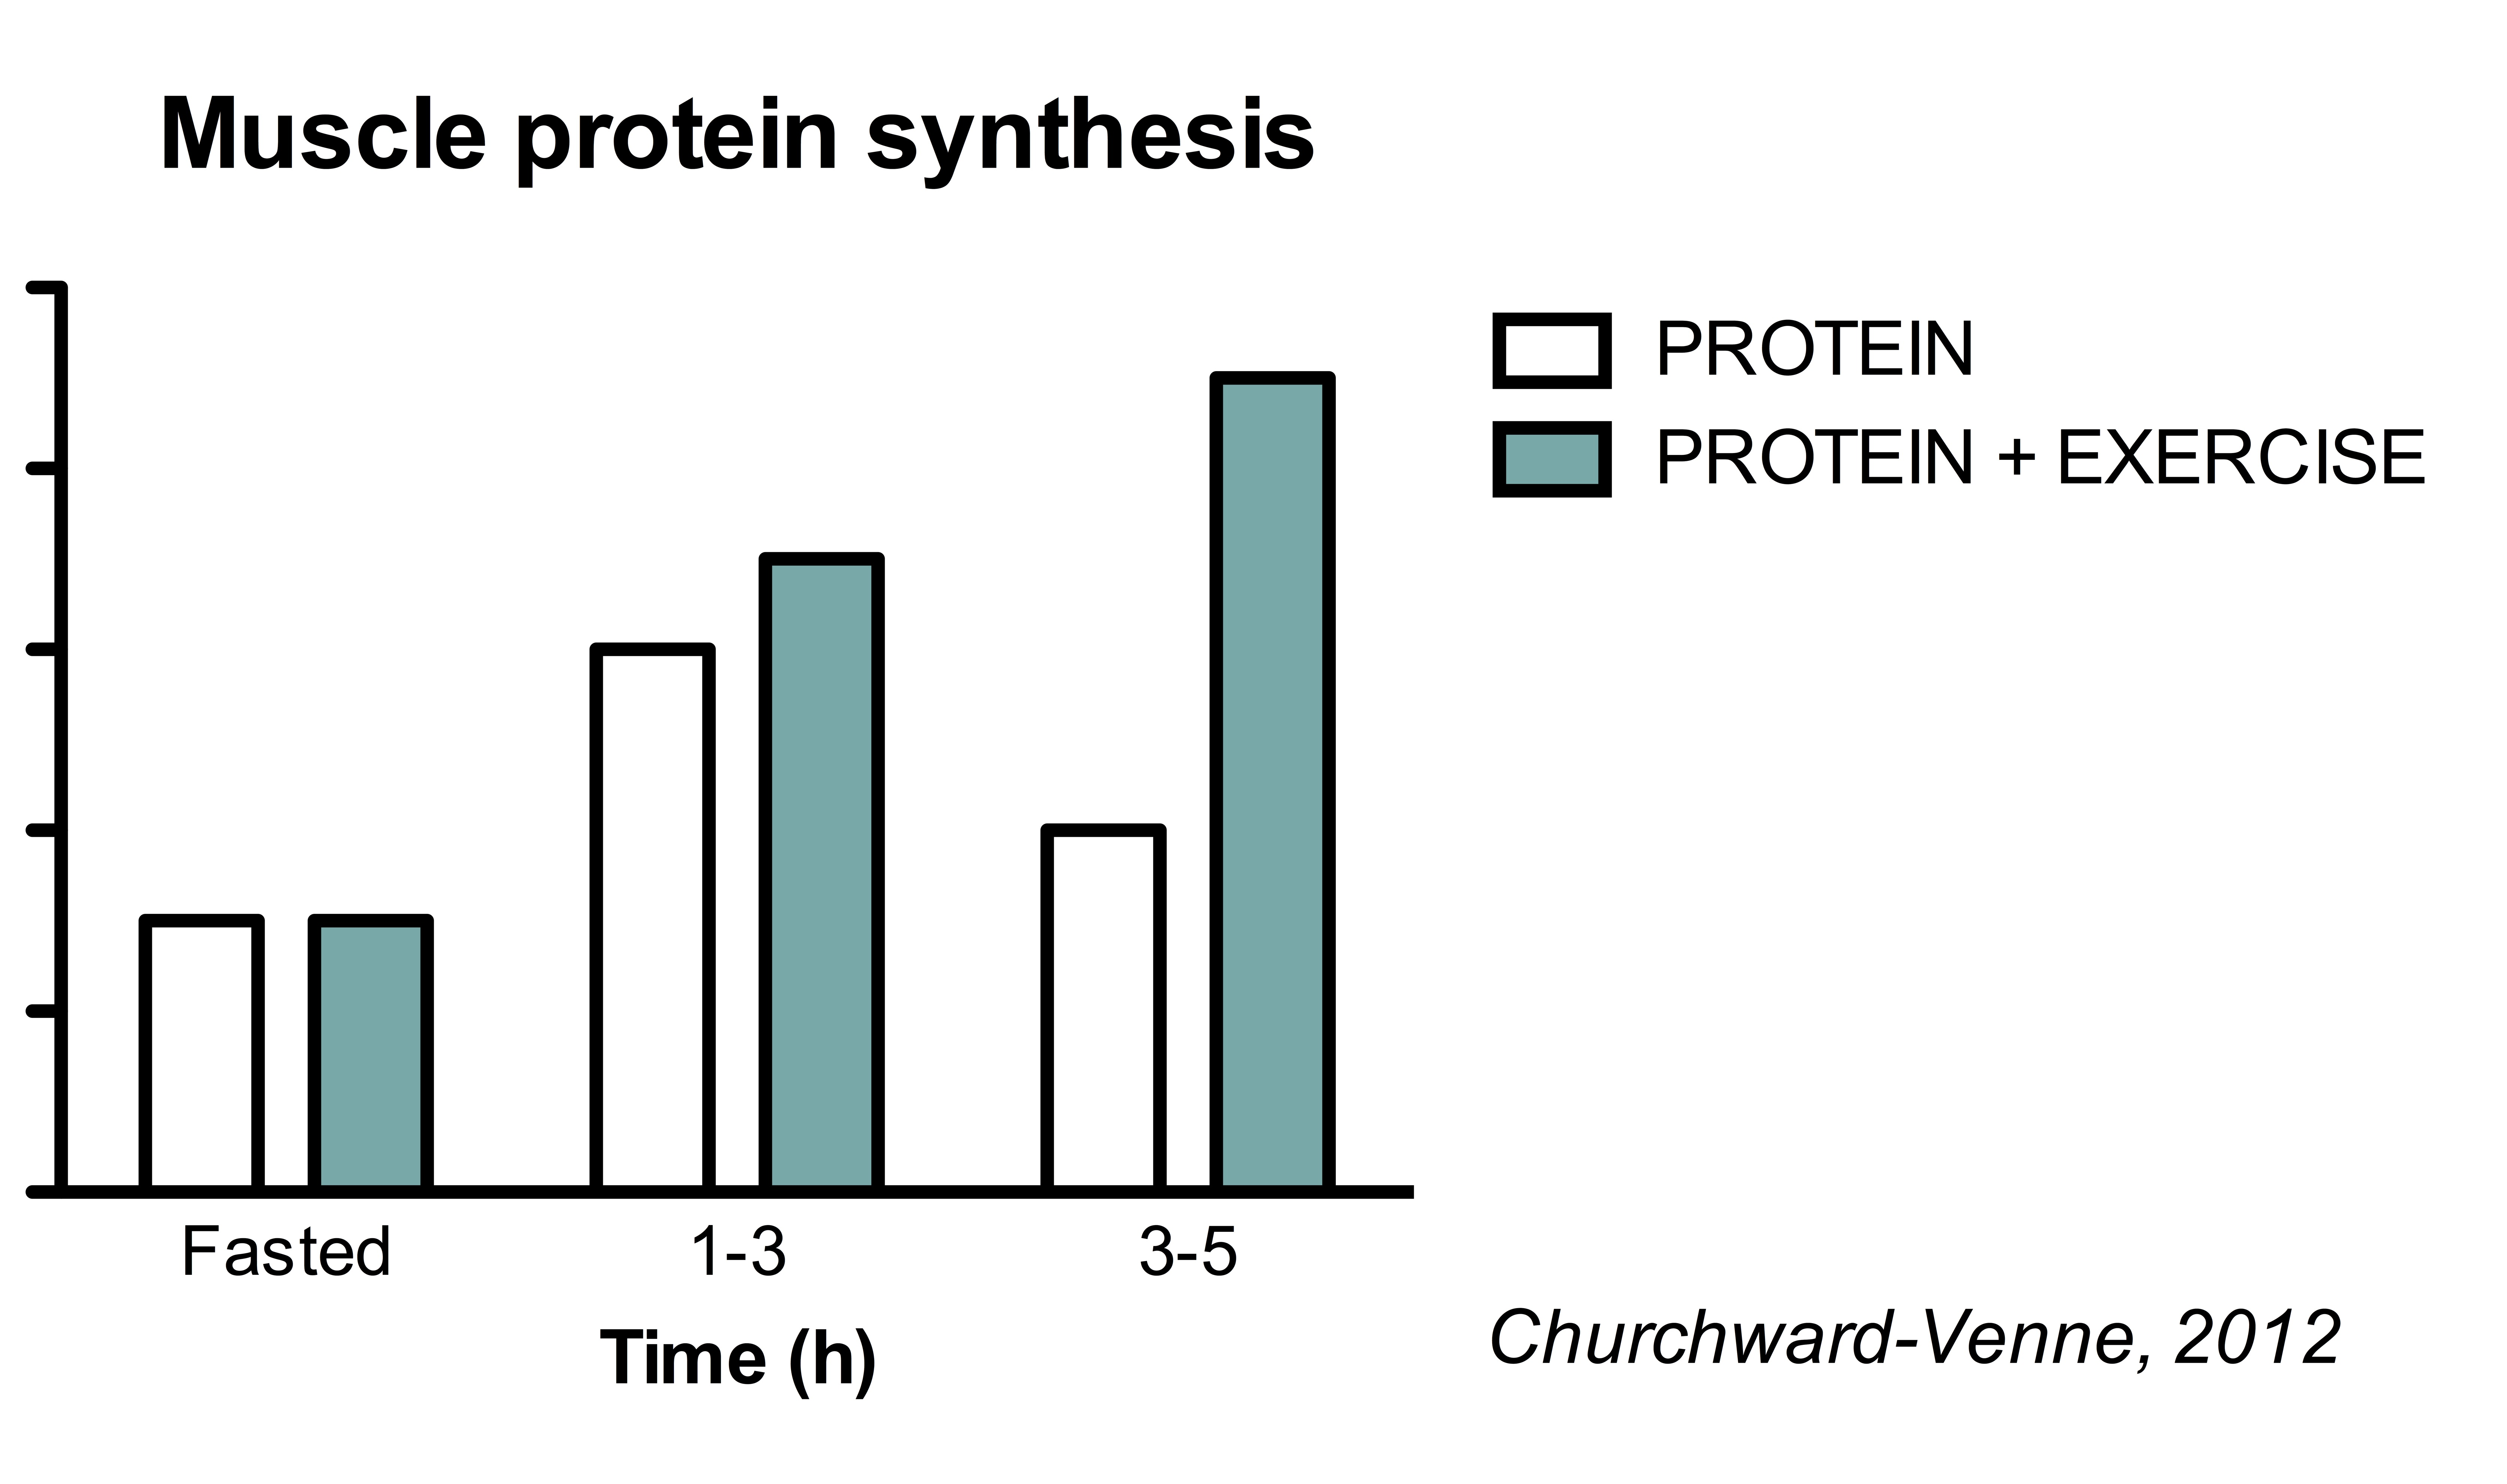 The Ultimate Guide To Muscle Protein Synthesis There Is An Incorrect Term In Diagram Explain Which This Exercise Vs Full Effect